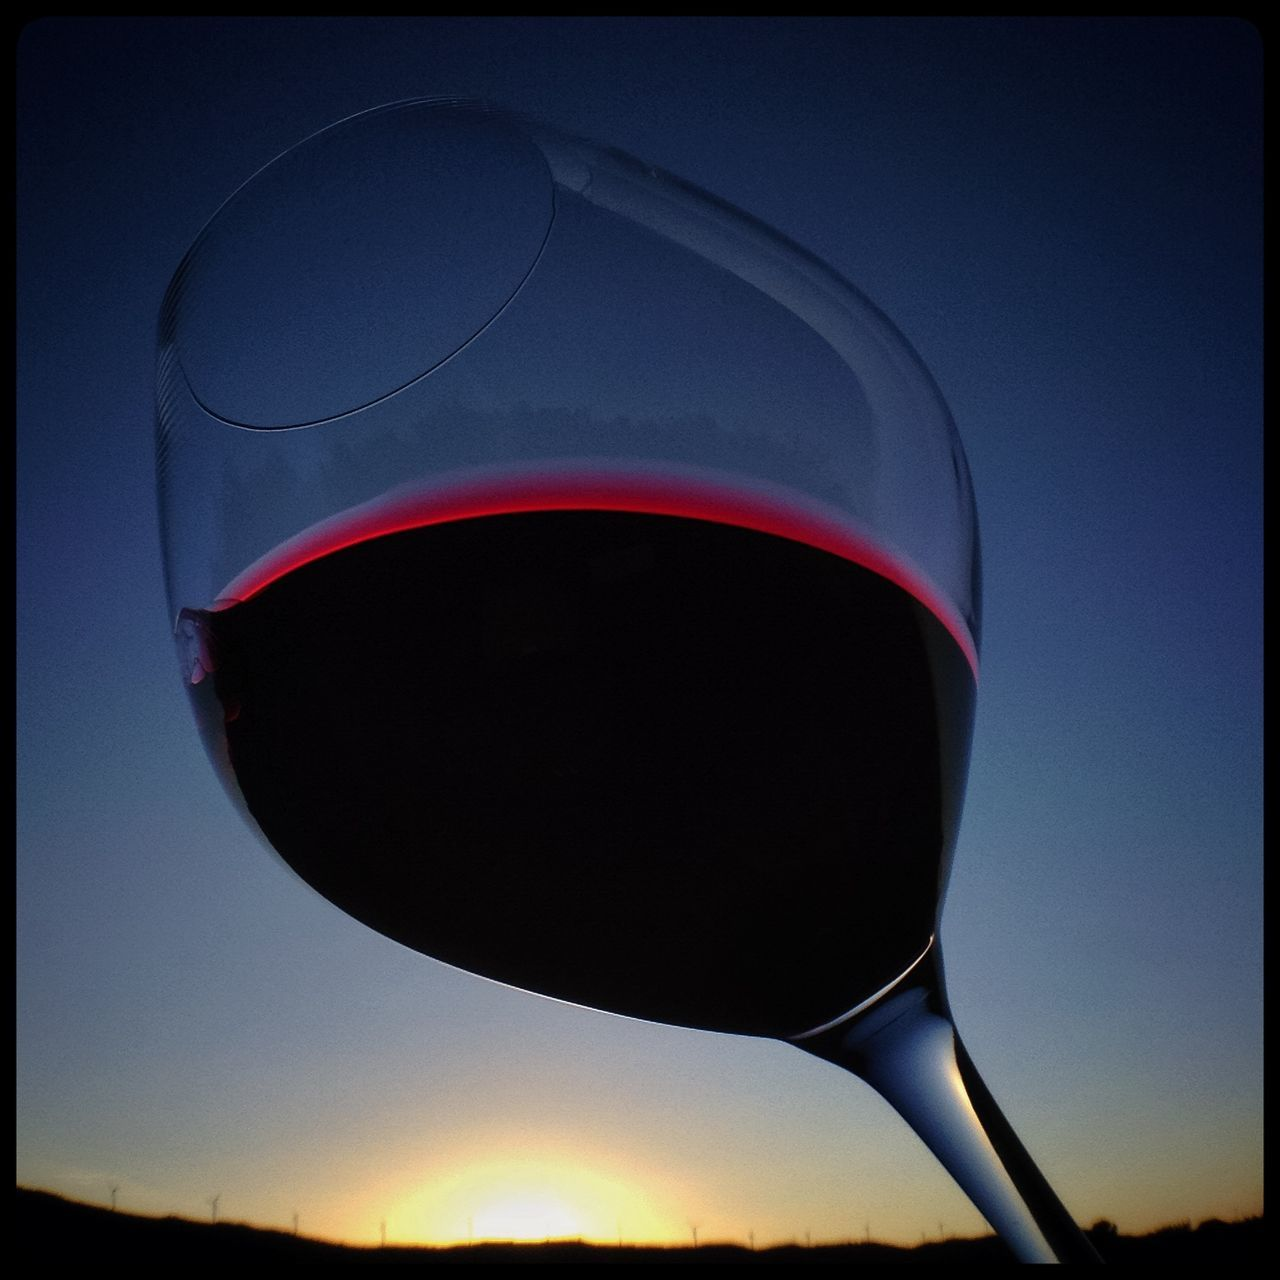 A glass of red Grenache wine against a setting Sun, Catalonia, Spain. Clear Sky Drinks Red Red Wine Sky SPAIN Spain ✈️🇪🇸 Spain♥ Sunset Sunset Lovers Sunset Silhouettes Sunset_collection Wine Wine Collection Wine Glass Wine Moments Wine Tasting Wine Time Wineandmore Wineglass Winery Wines Winestagram